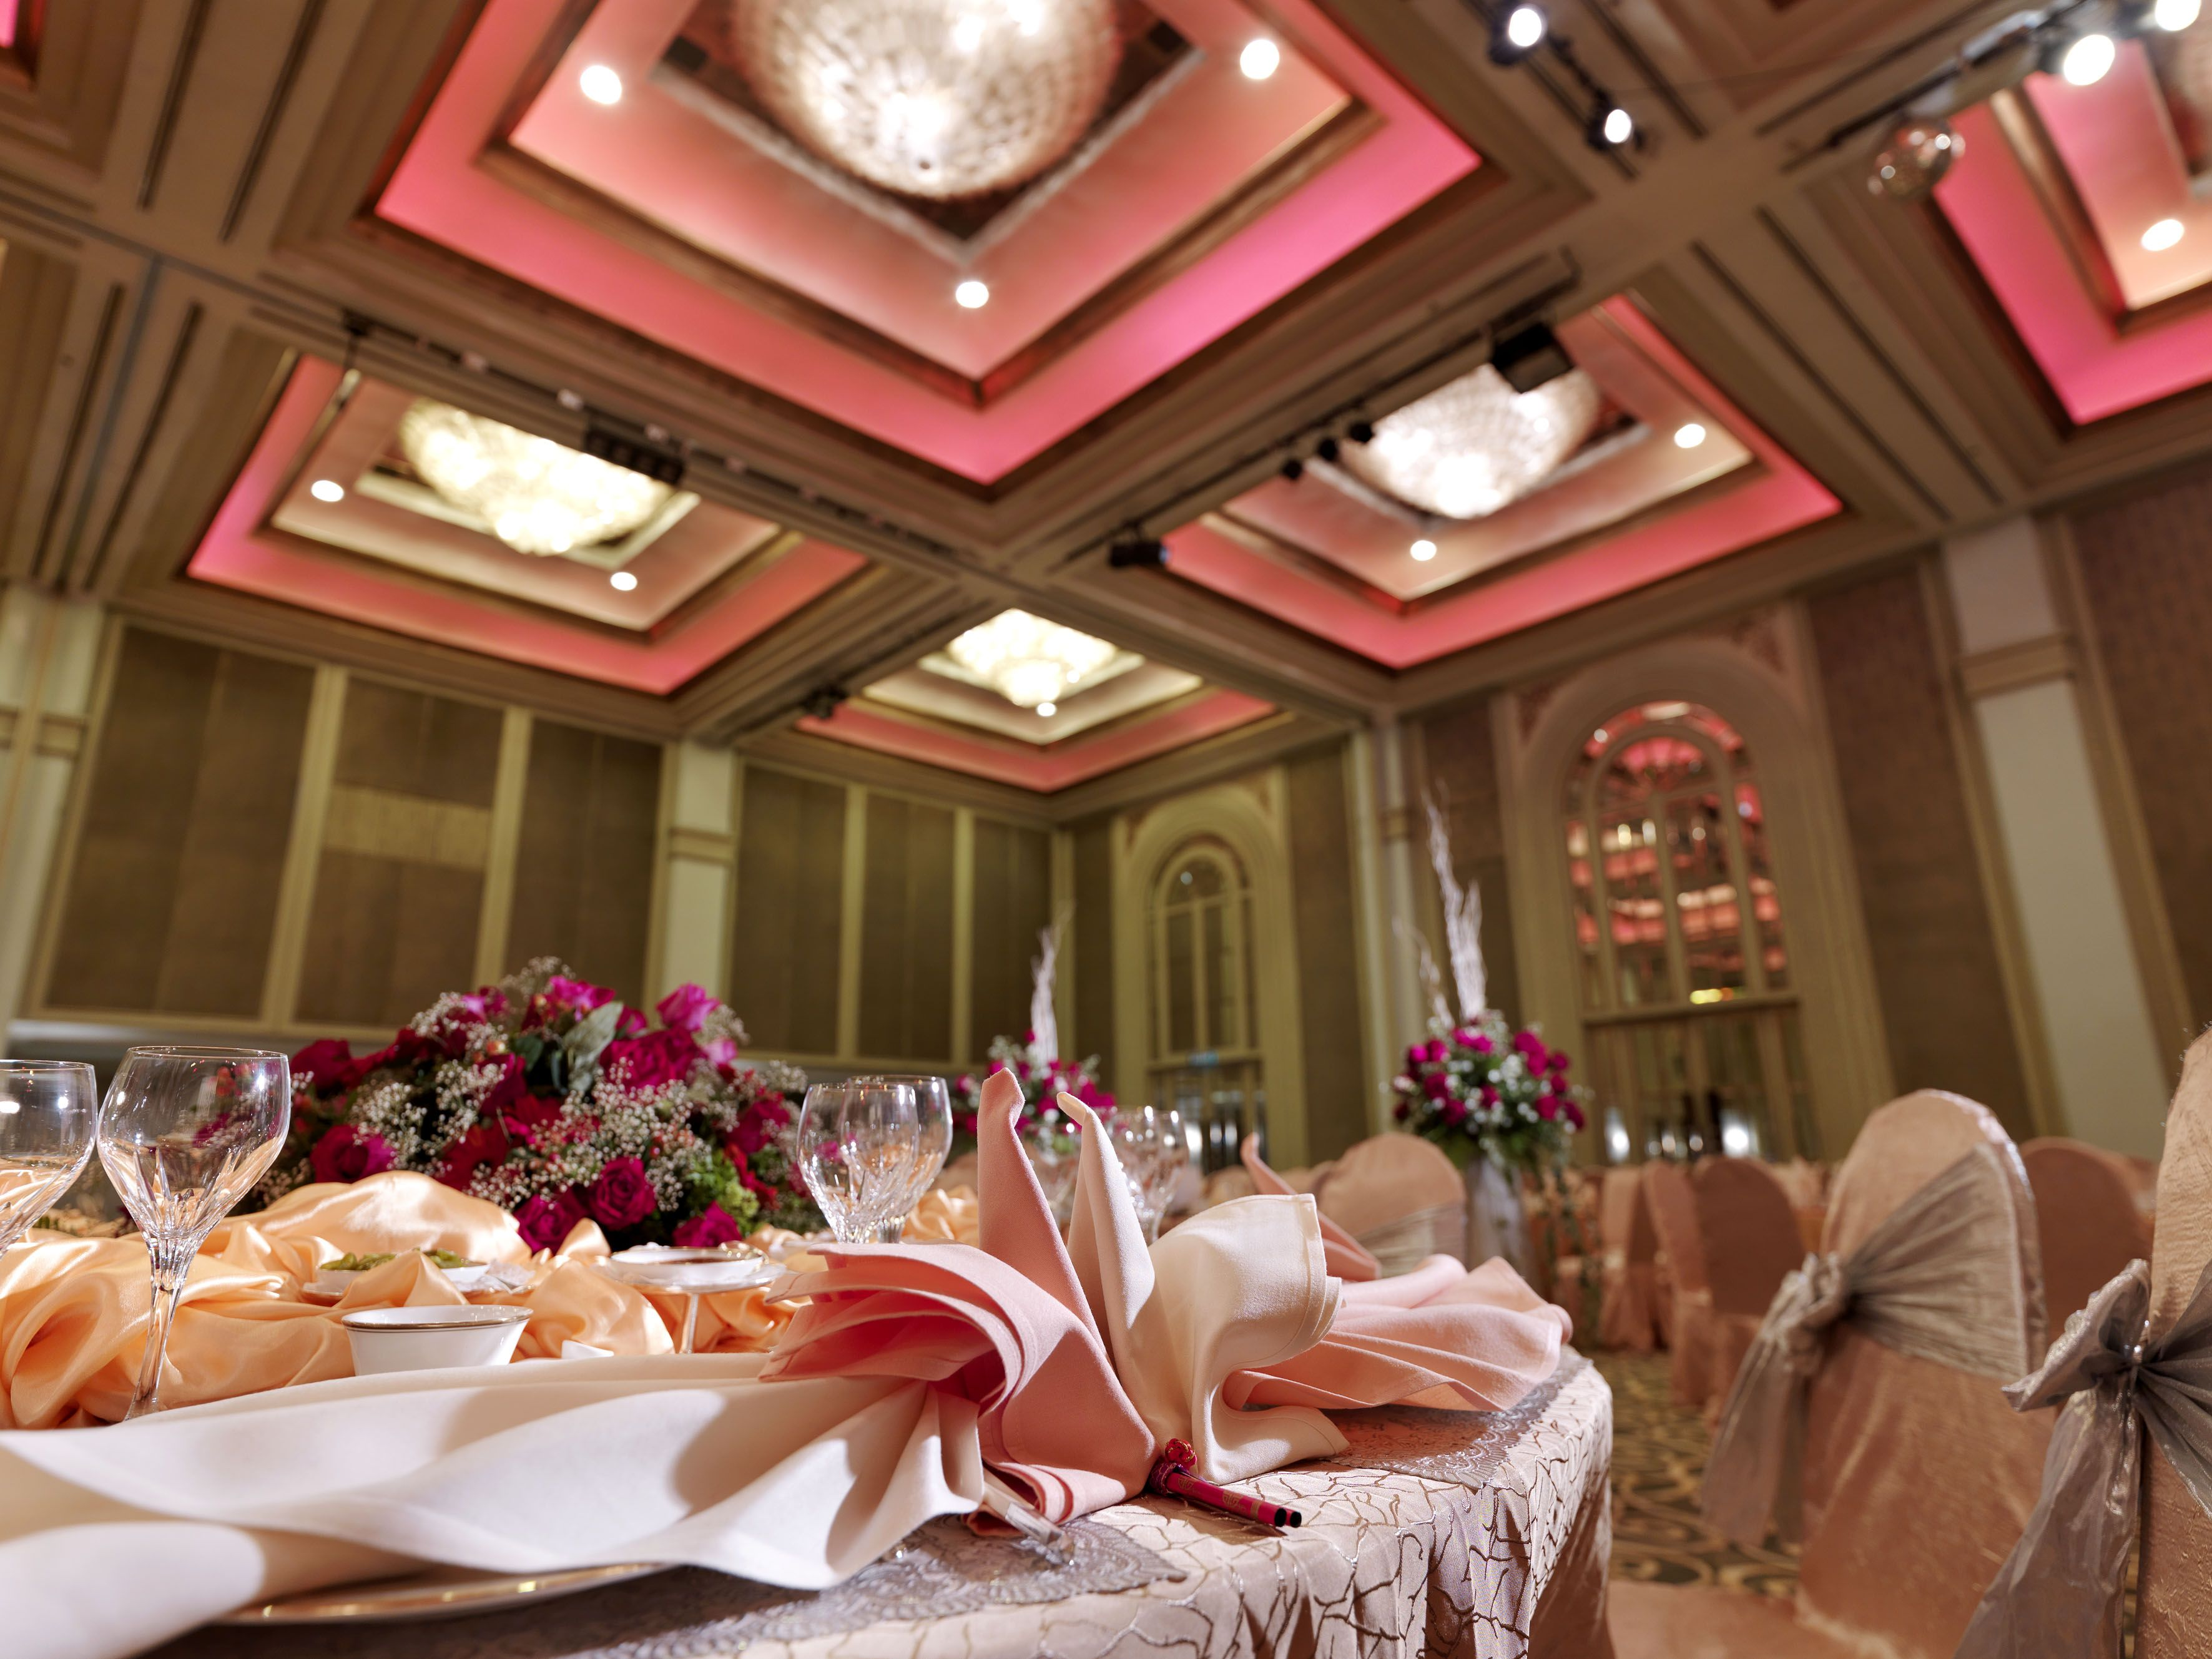 15 best wedding events images on pinterest wedding events hotel make the wedding of your dreams come true talk to us and well hotel kuala lumpurdream junglespirit Gallery